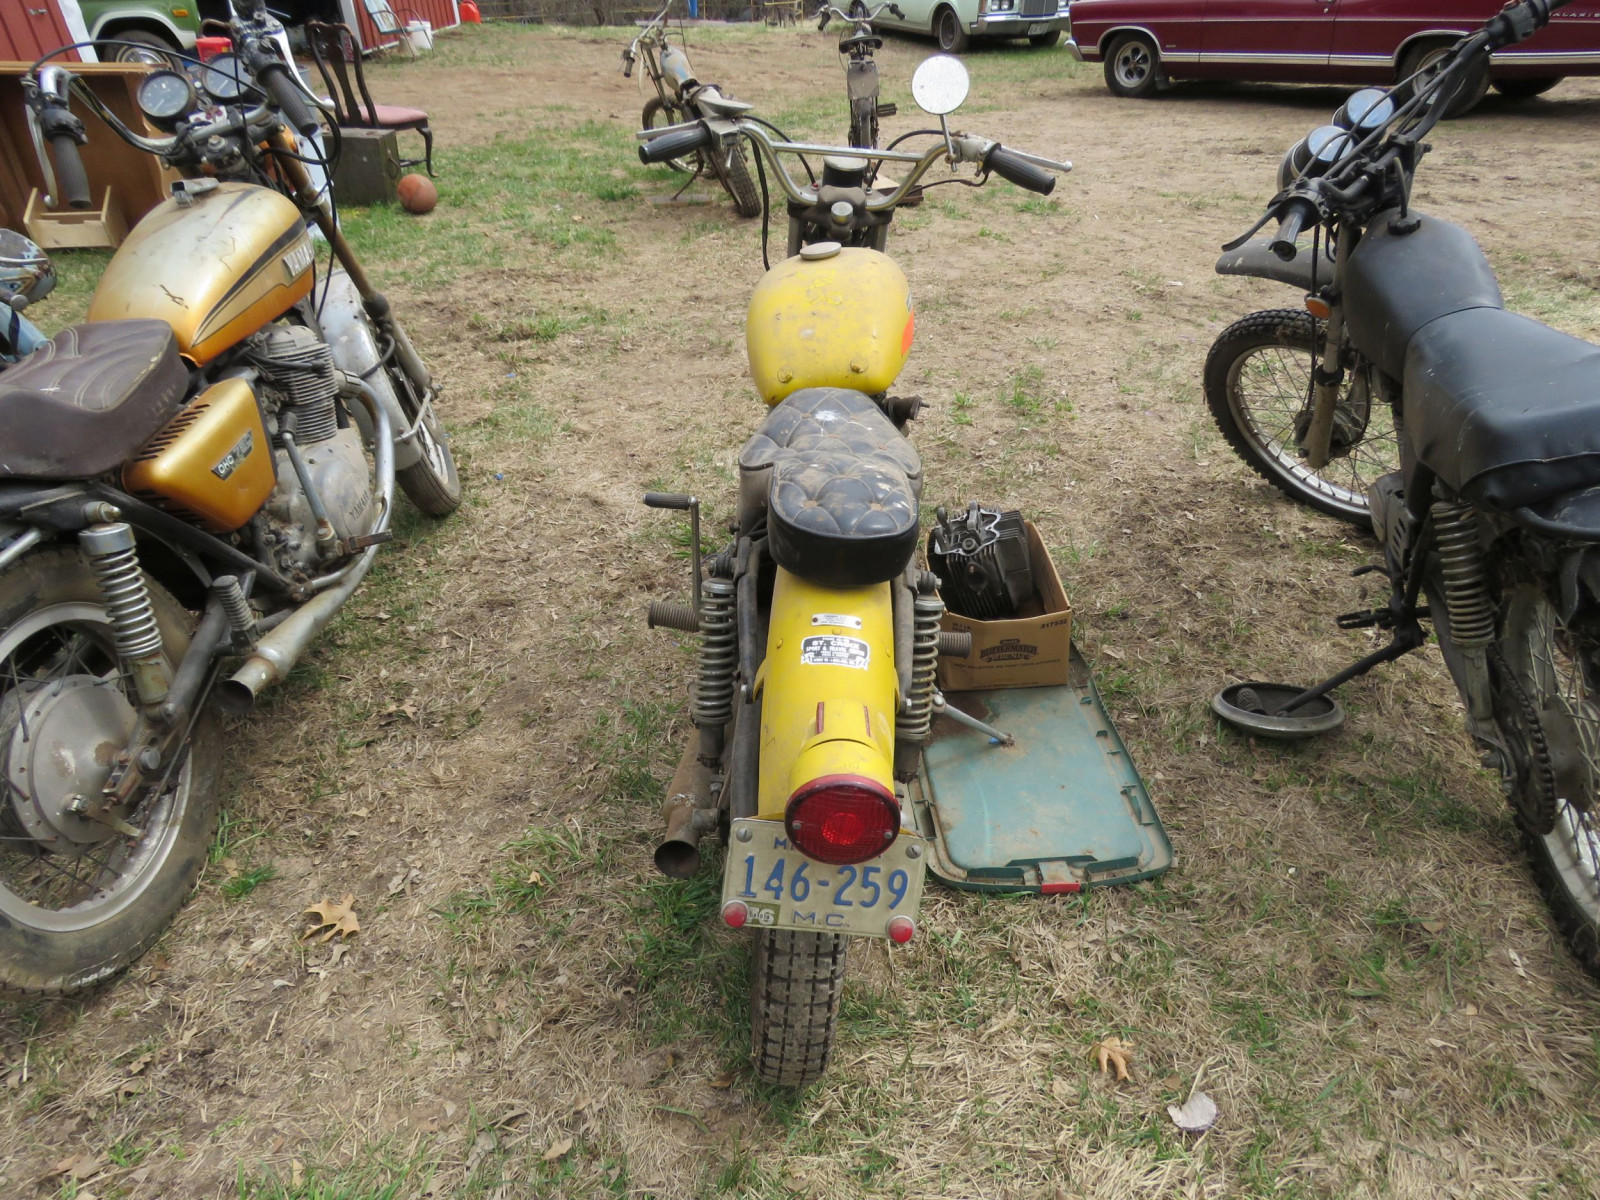 1971 Harley Davidson-AMF H2 Sprint GS350 Motorcycle for Project - Image 5